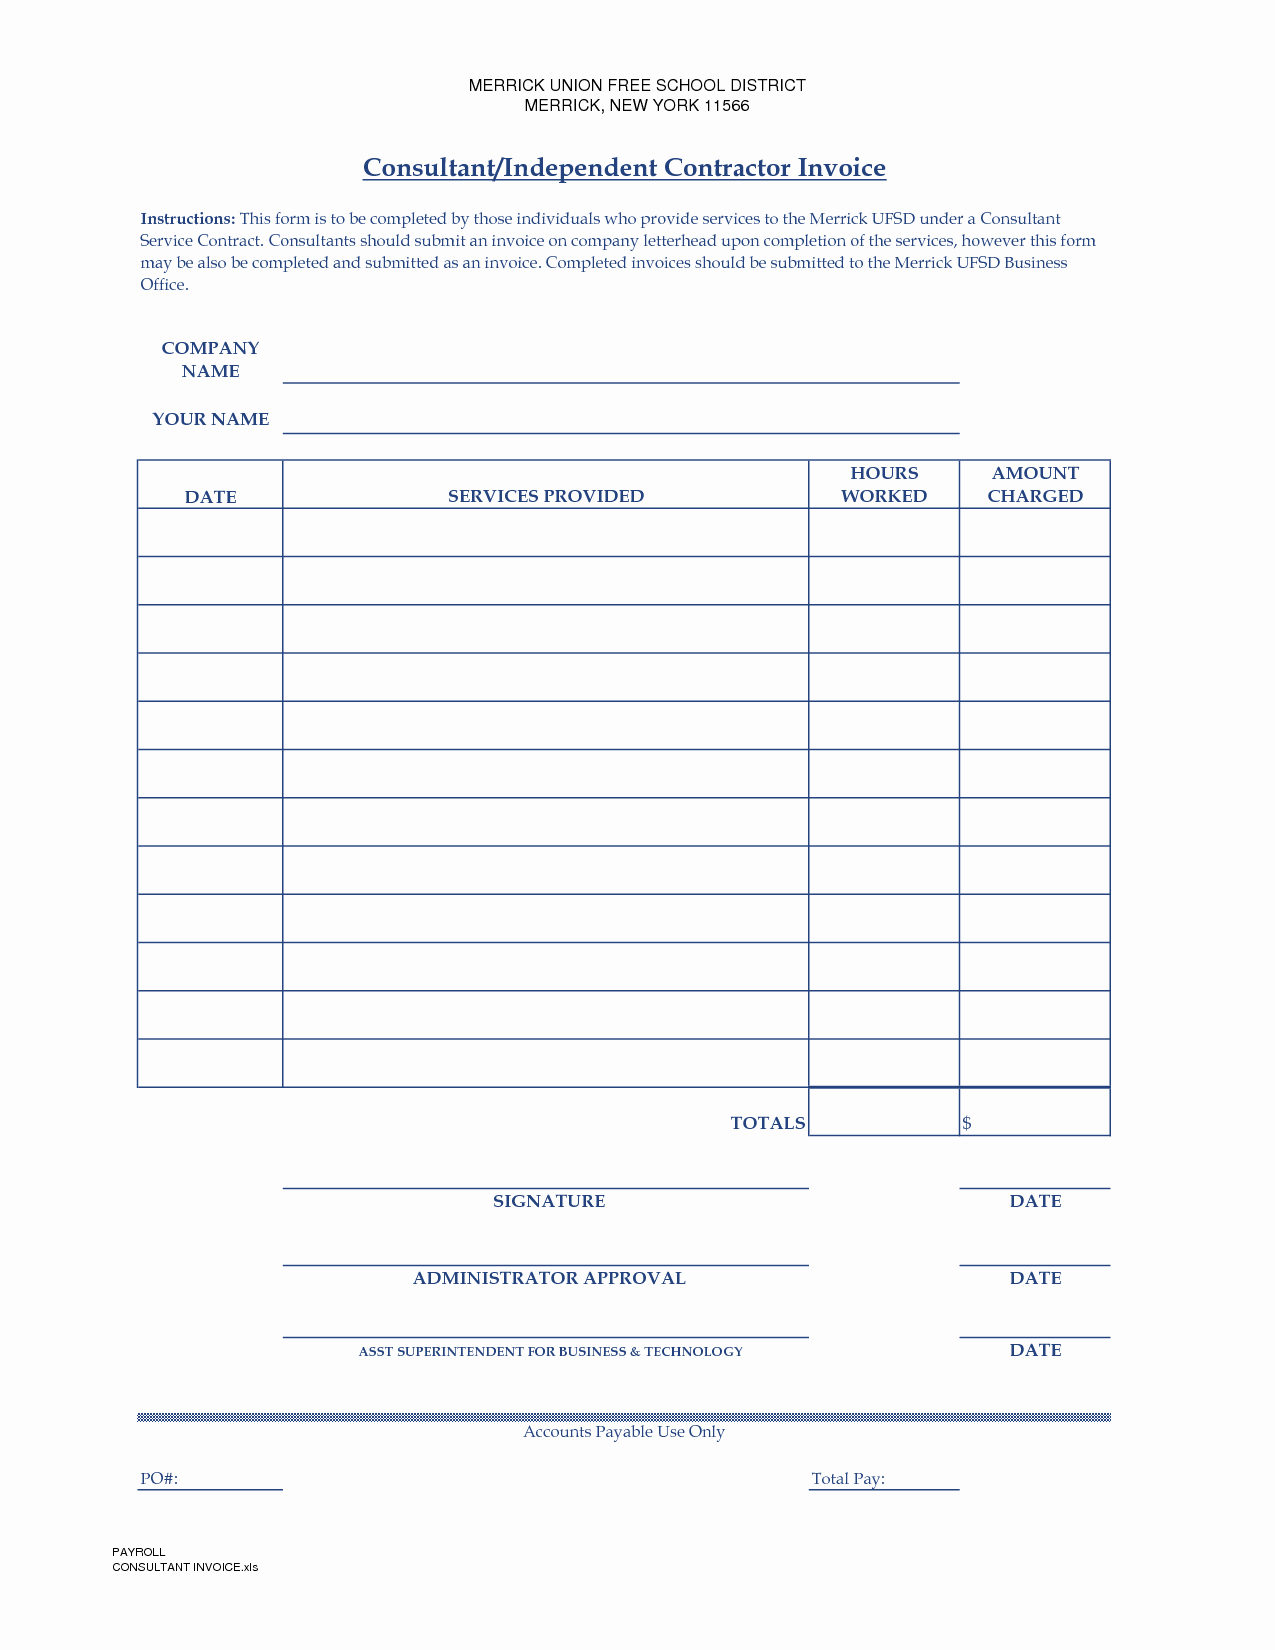 Independent Contractor Invoice Template Beautiful Independent Contractor Invoice Template Free